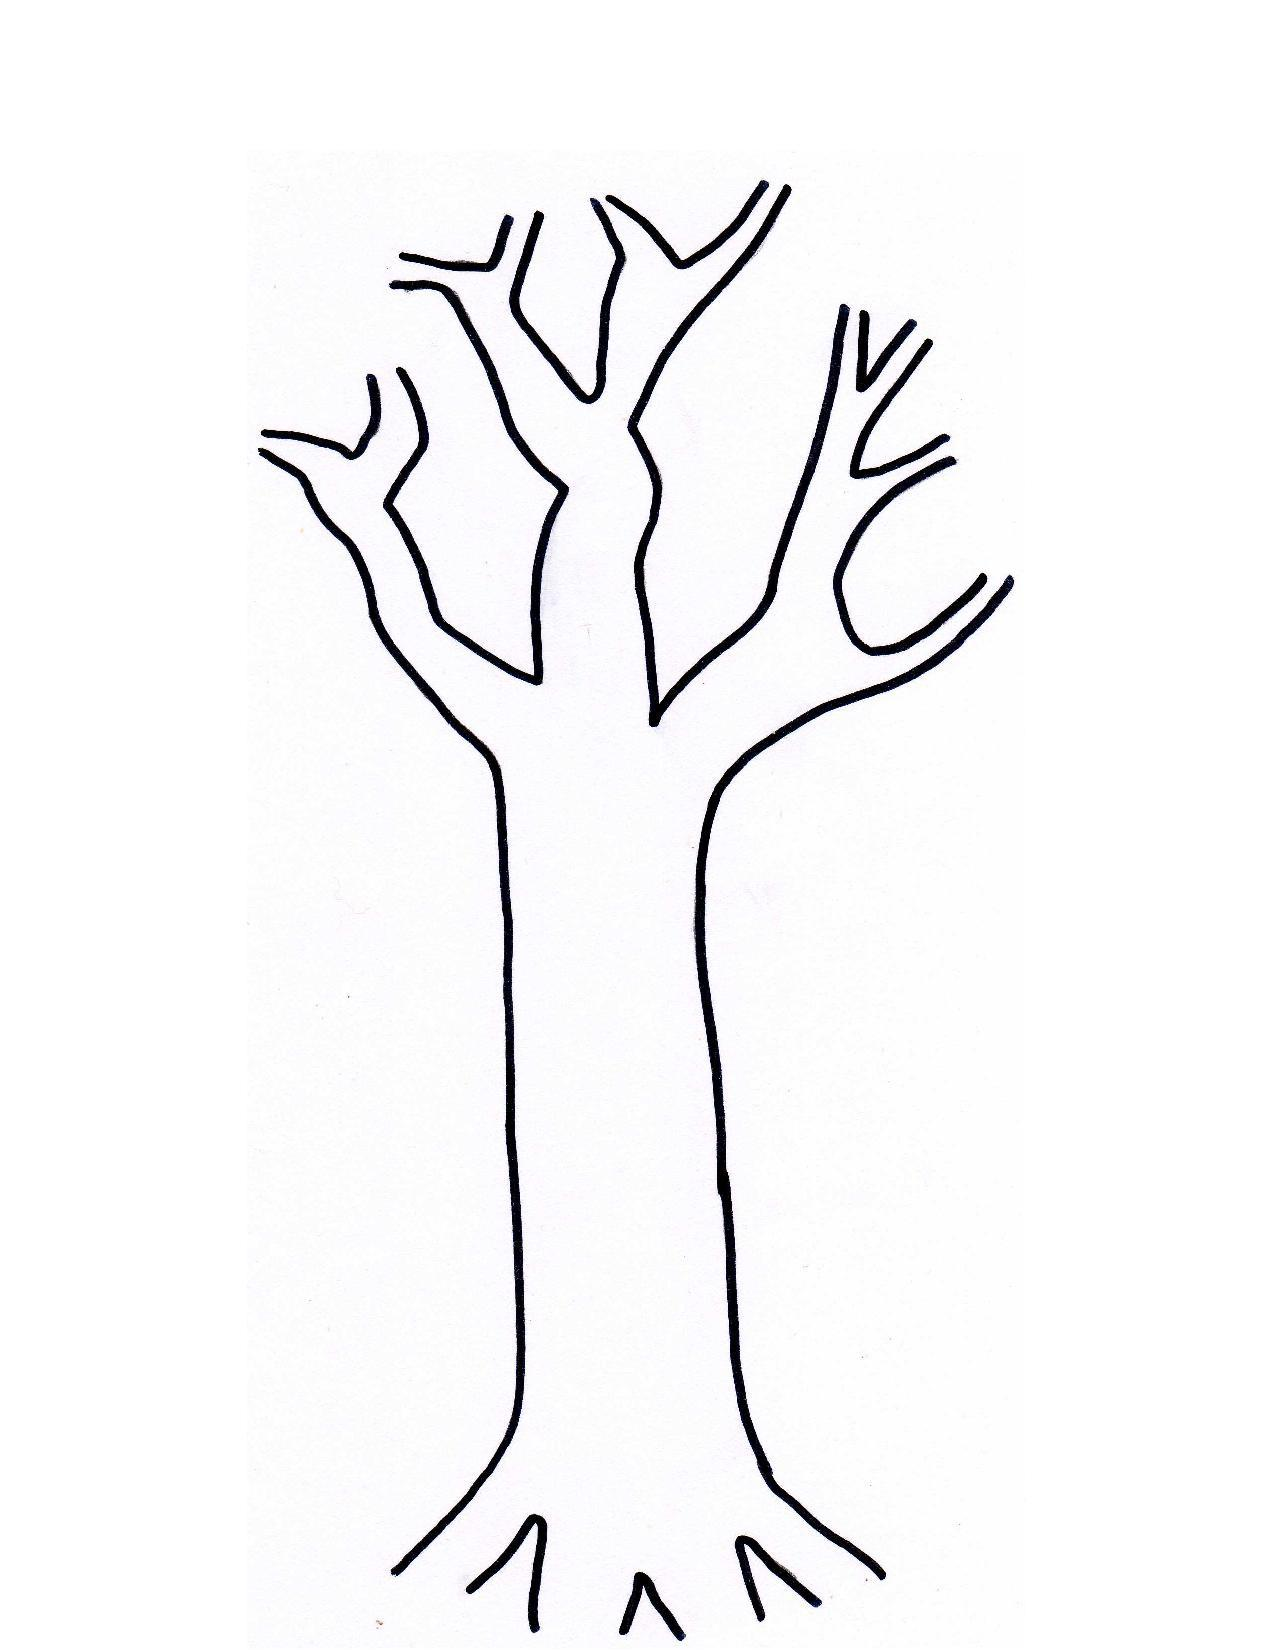 Free Tree Template Download Free Clip Art Free Clip Art On Clipart Library